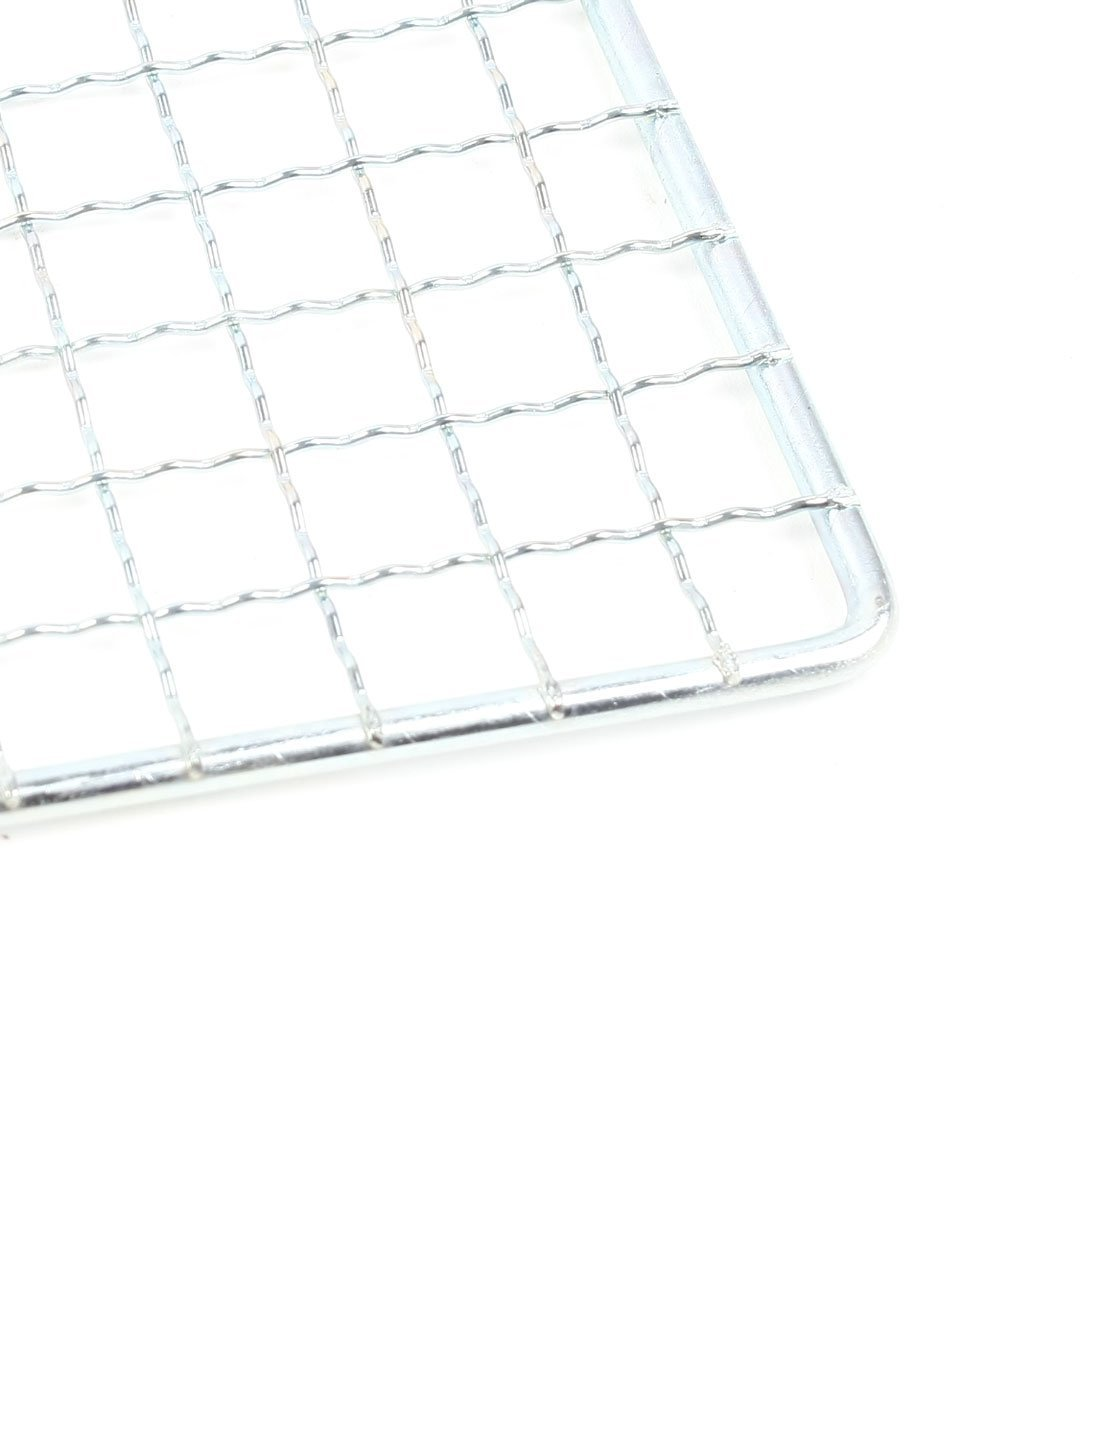 DealMux Picnic Outdoor Metal Barbecue Tool Grilling Net Mesh Silver Tone